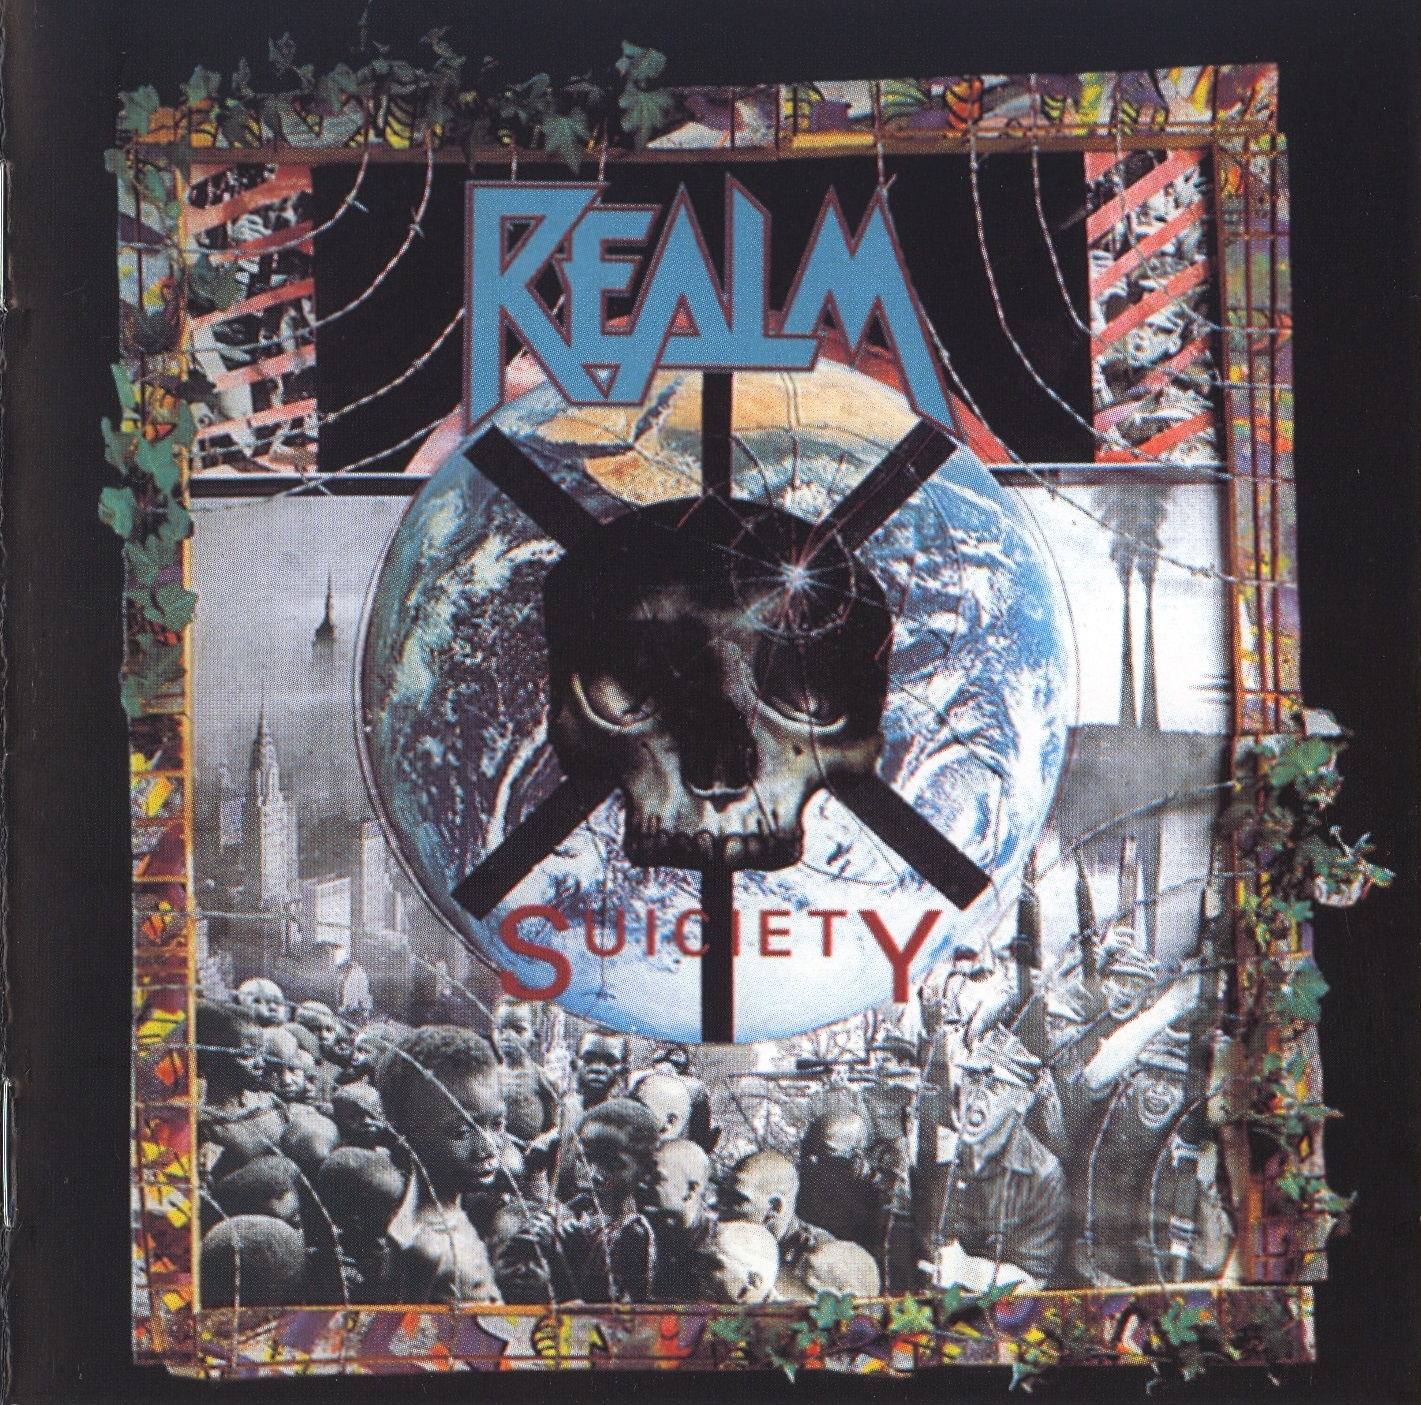 Realm - Suiciety - 2006